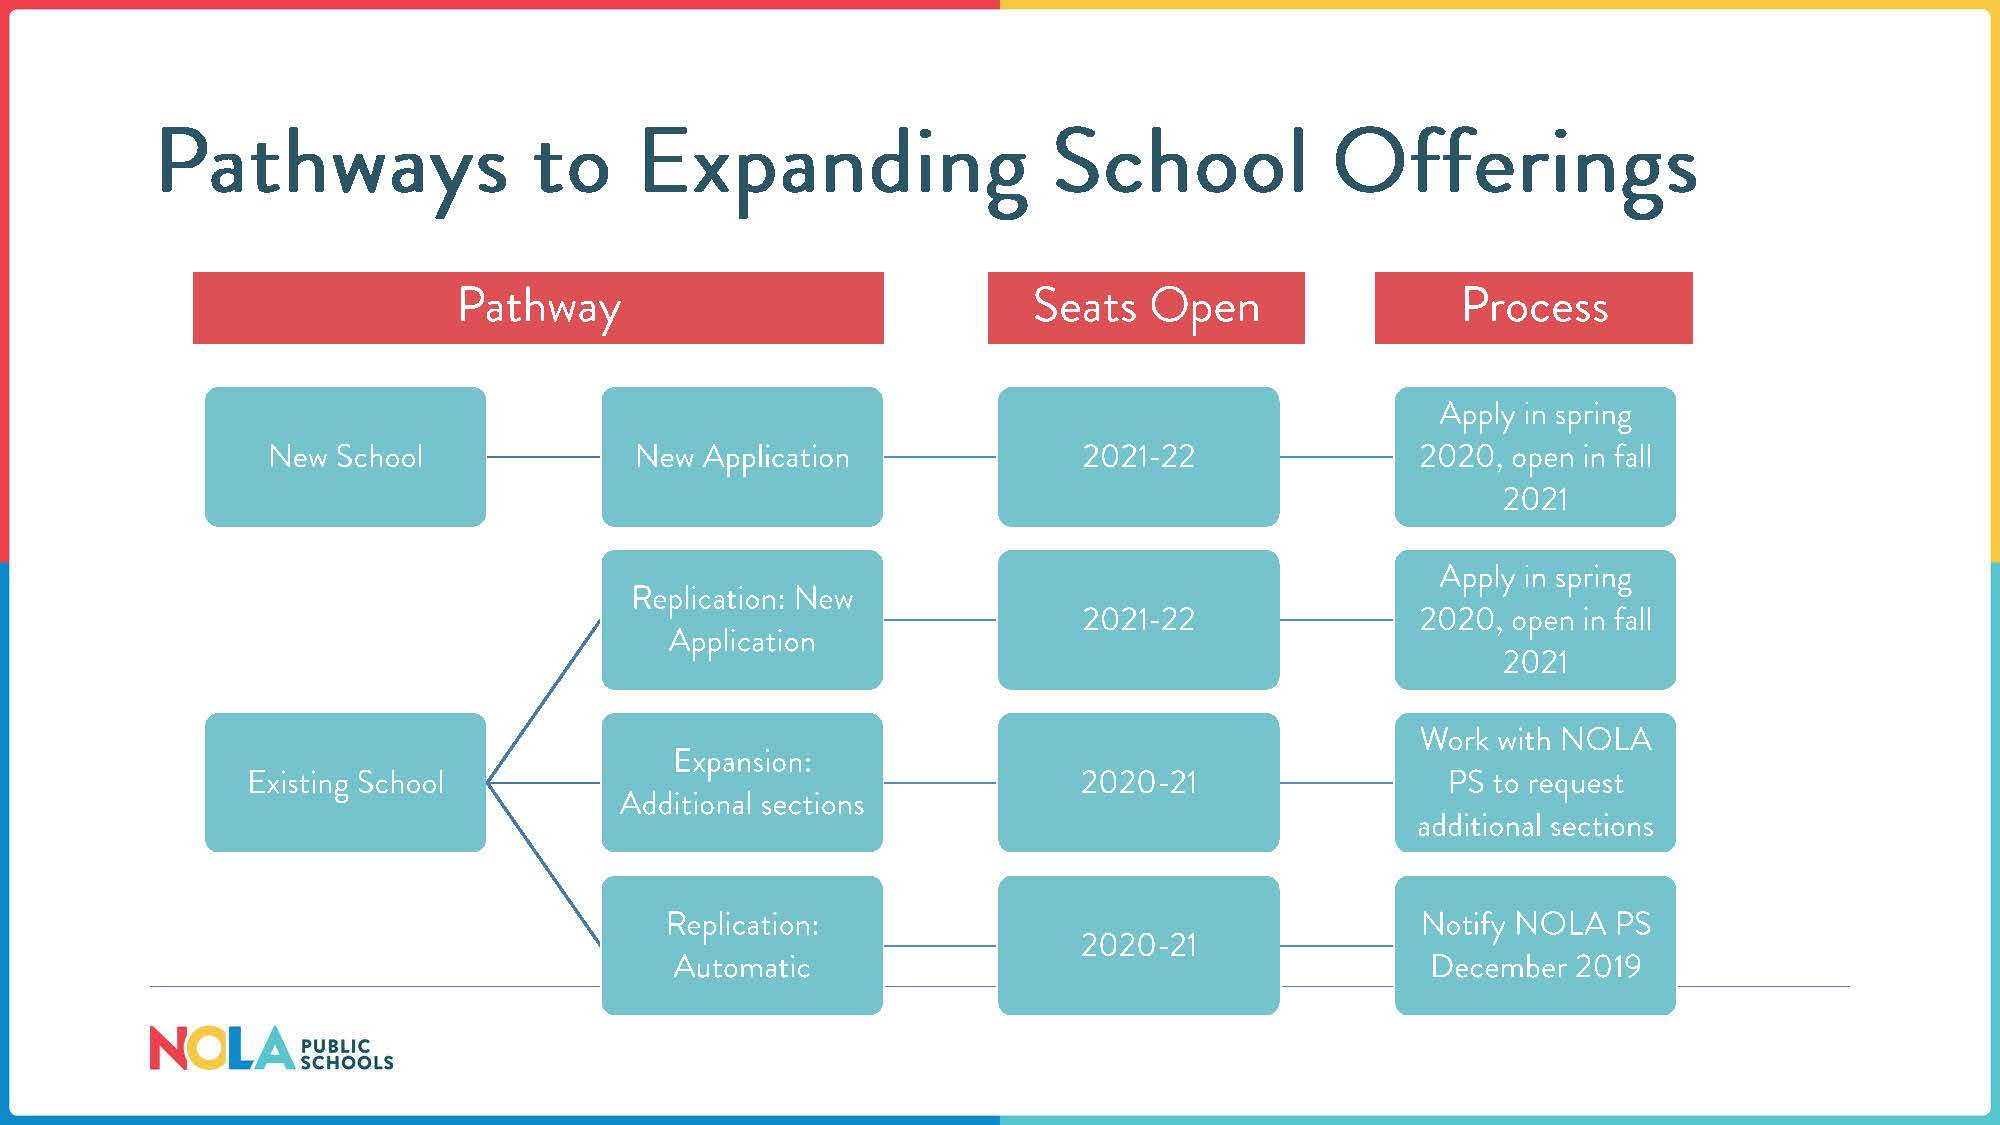 Pathways to Expanding School Offerings, indicating pathway, when seats open, and process.